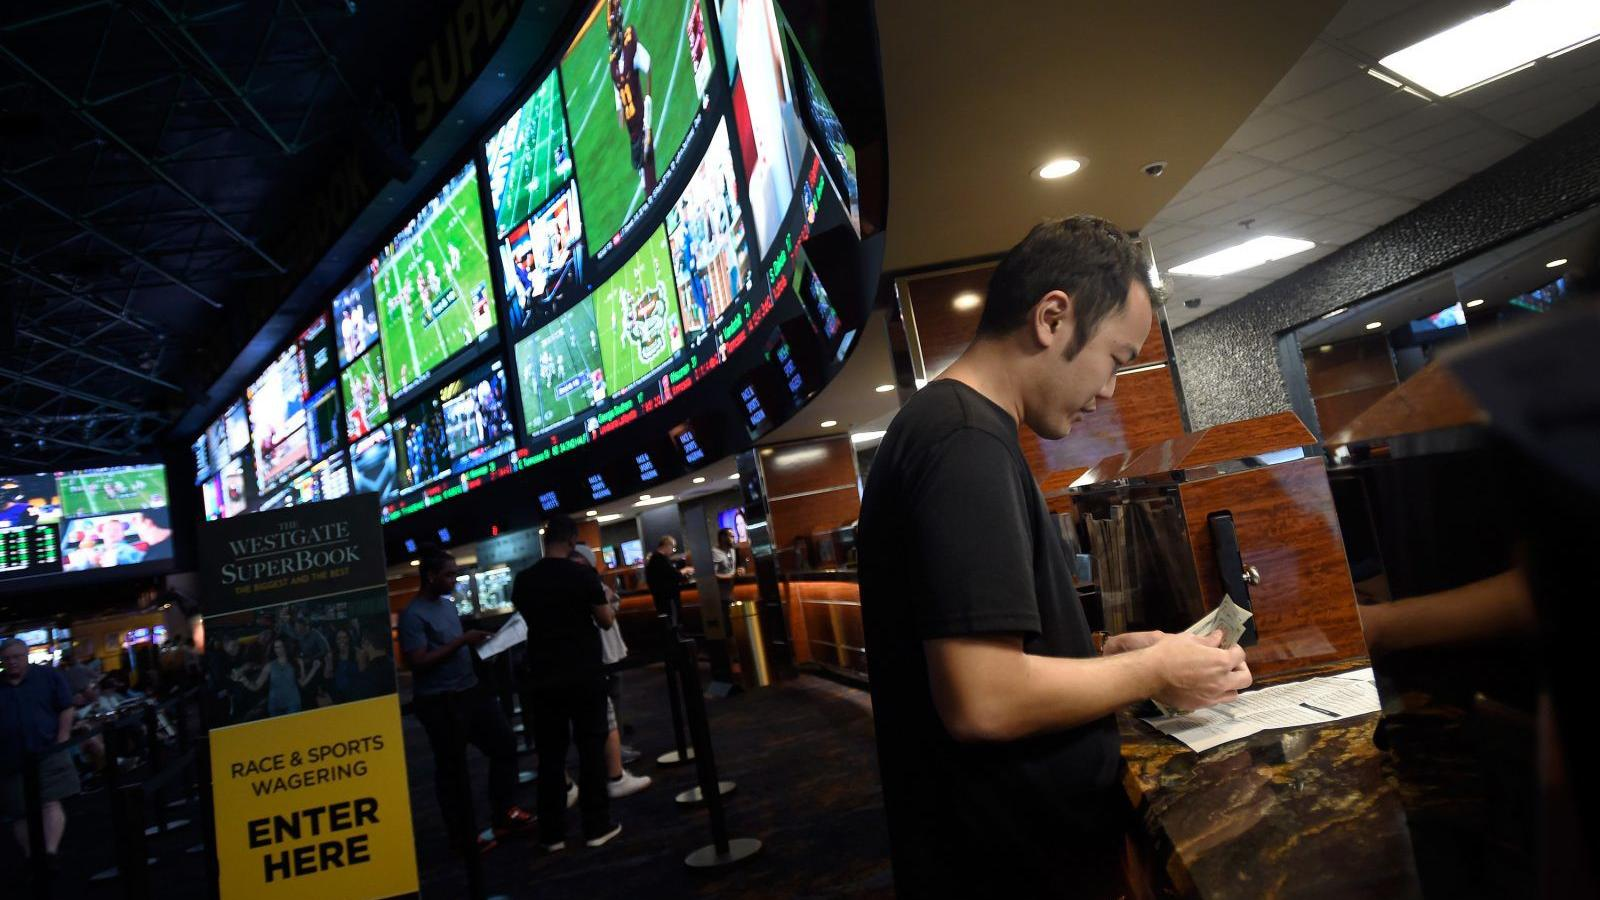 Online sports betting legal in ny song election betting odds ireland